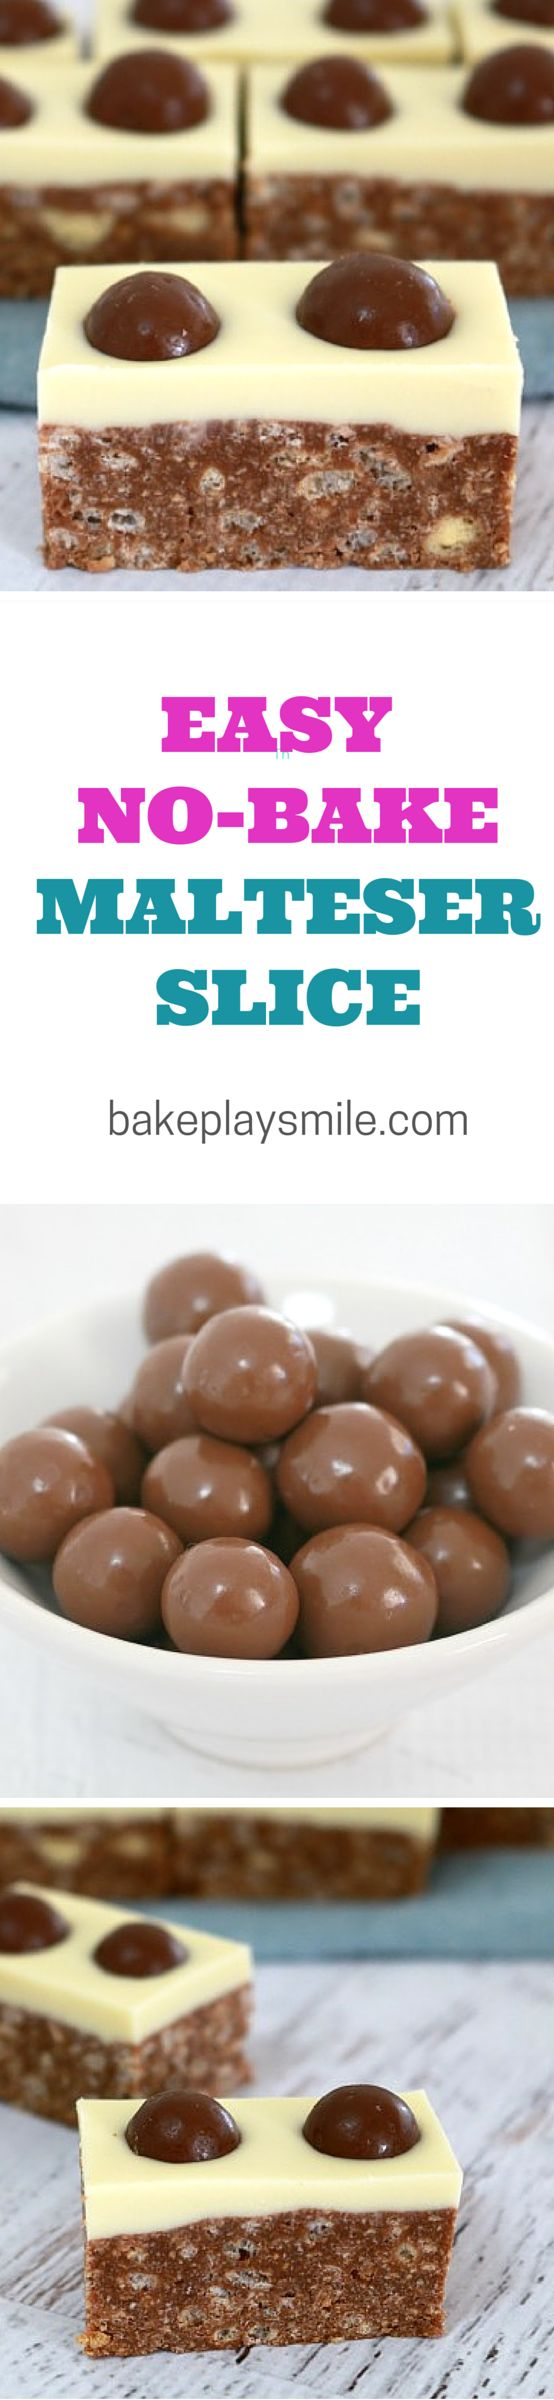 It's no surprise that this is the most popular recipe on Bake Play Smile. I love…